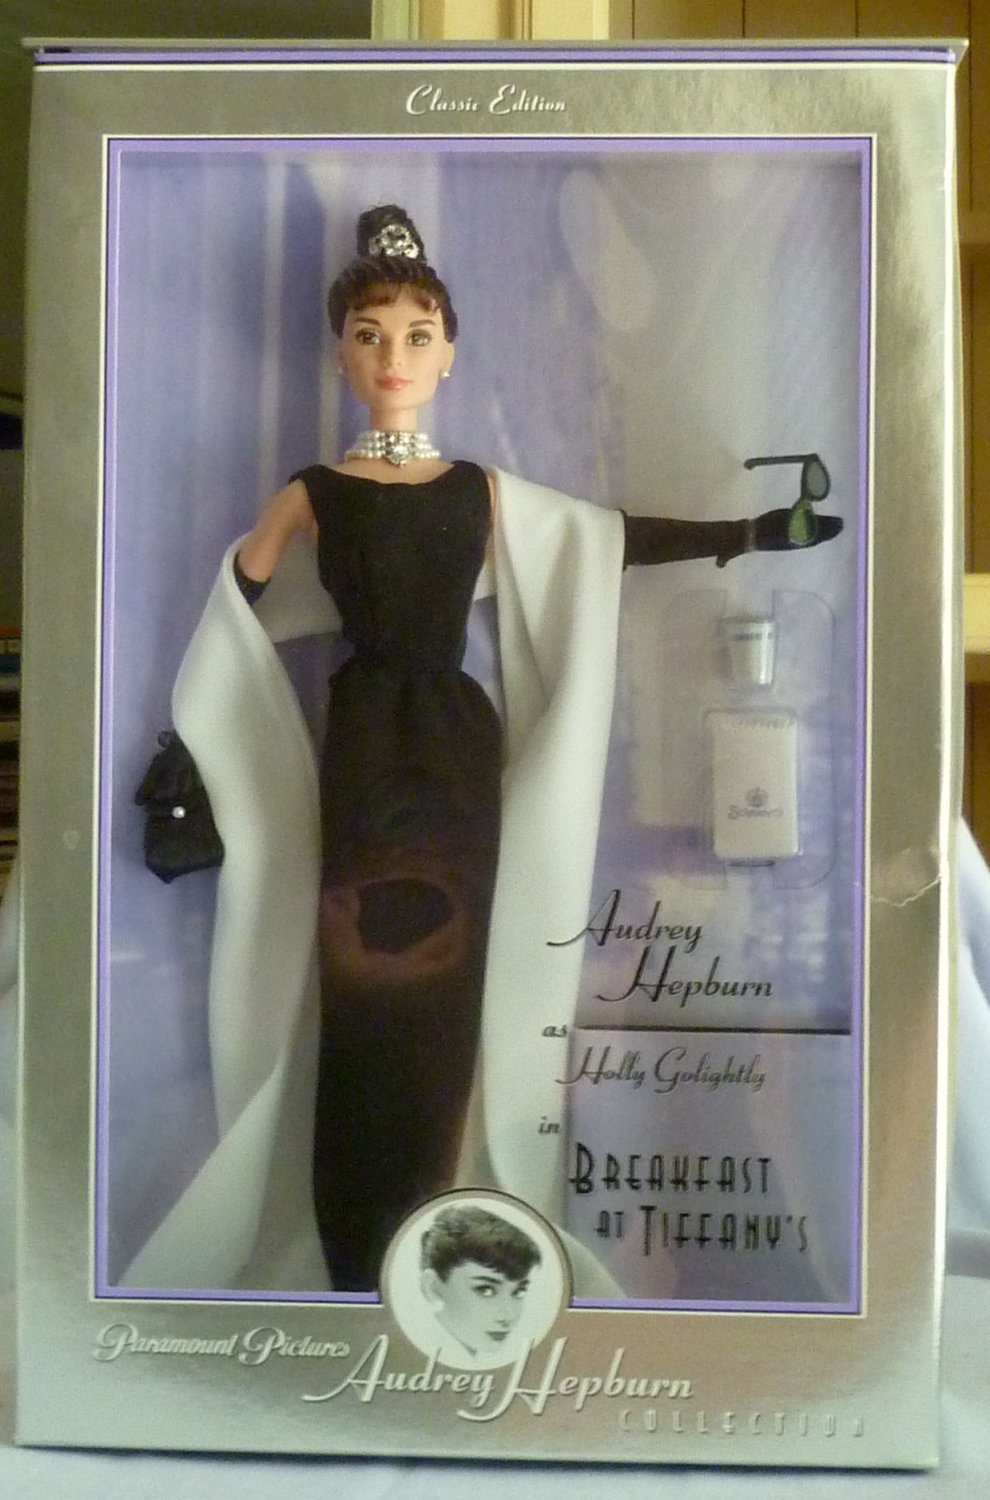 Audrey Hepburn Breakfast at Tiffany's in Givenchy Black Evening Gown Barbie Doll